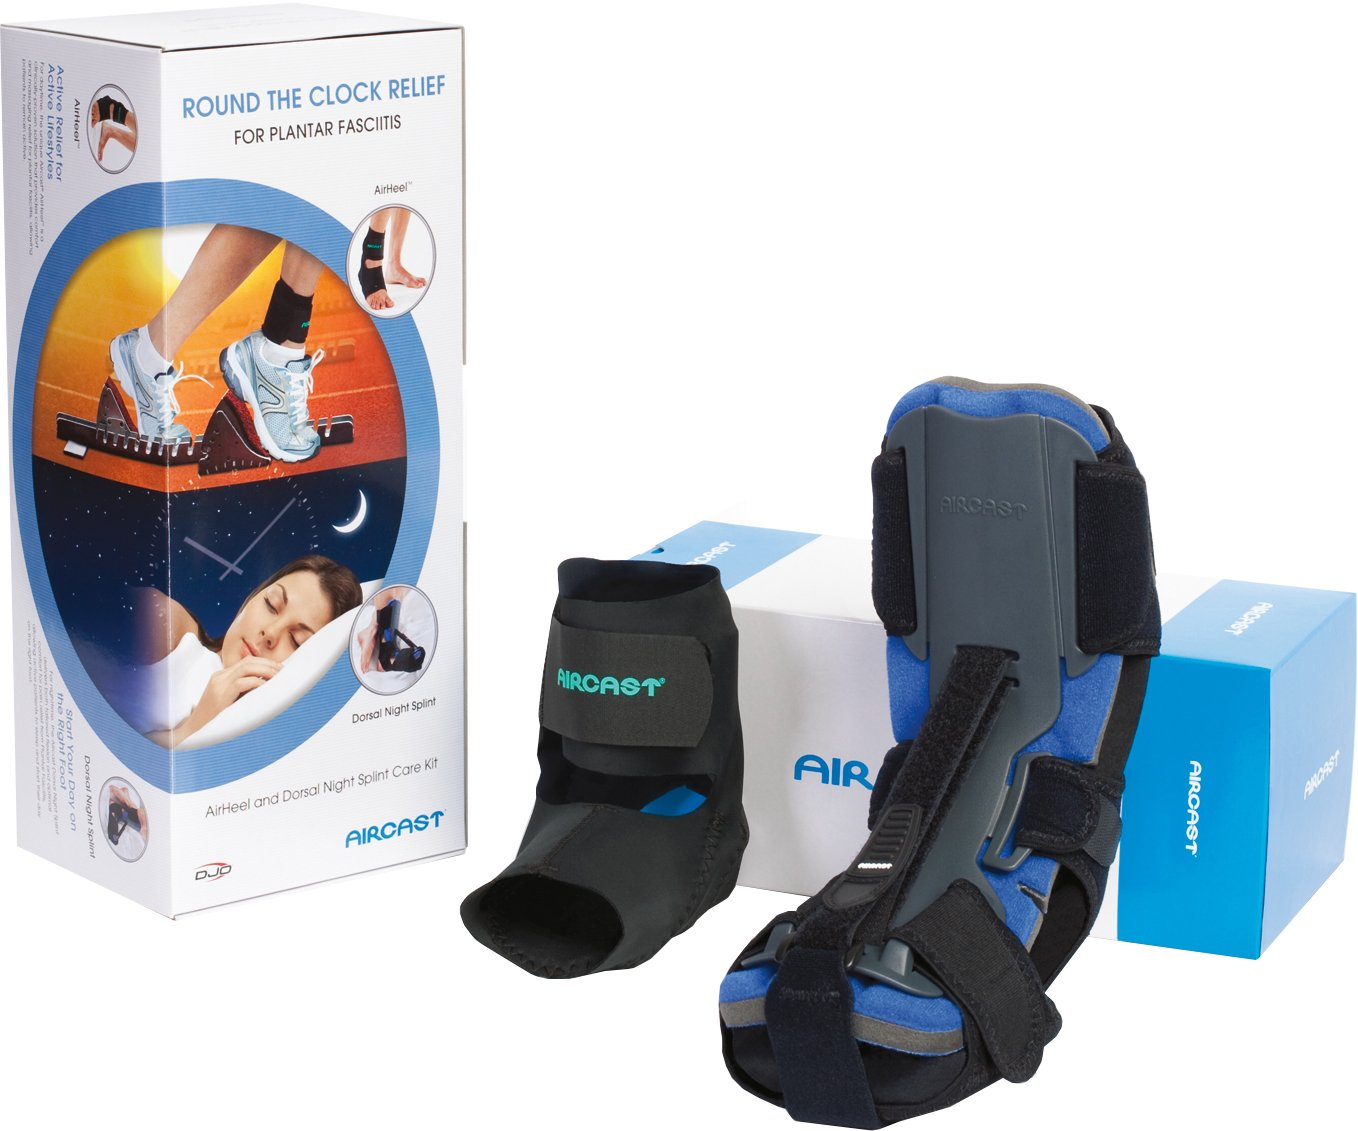 Aircast AirHeel Ankle Support Brace and Dorsal Night Splint (DNS) Care Kit, Medium by Aircast